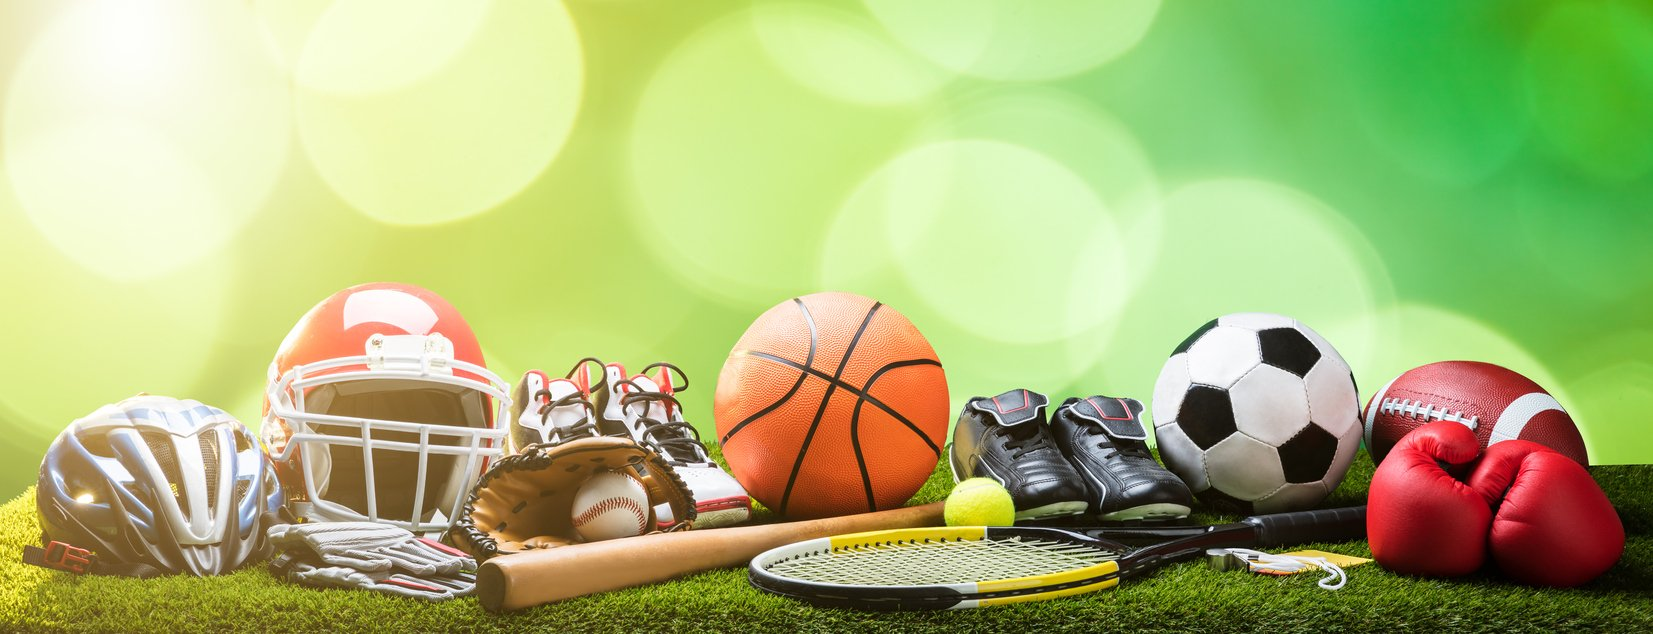 The Most Common Sports Injuries can occur with student athletes and weekend warriors.